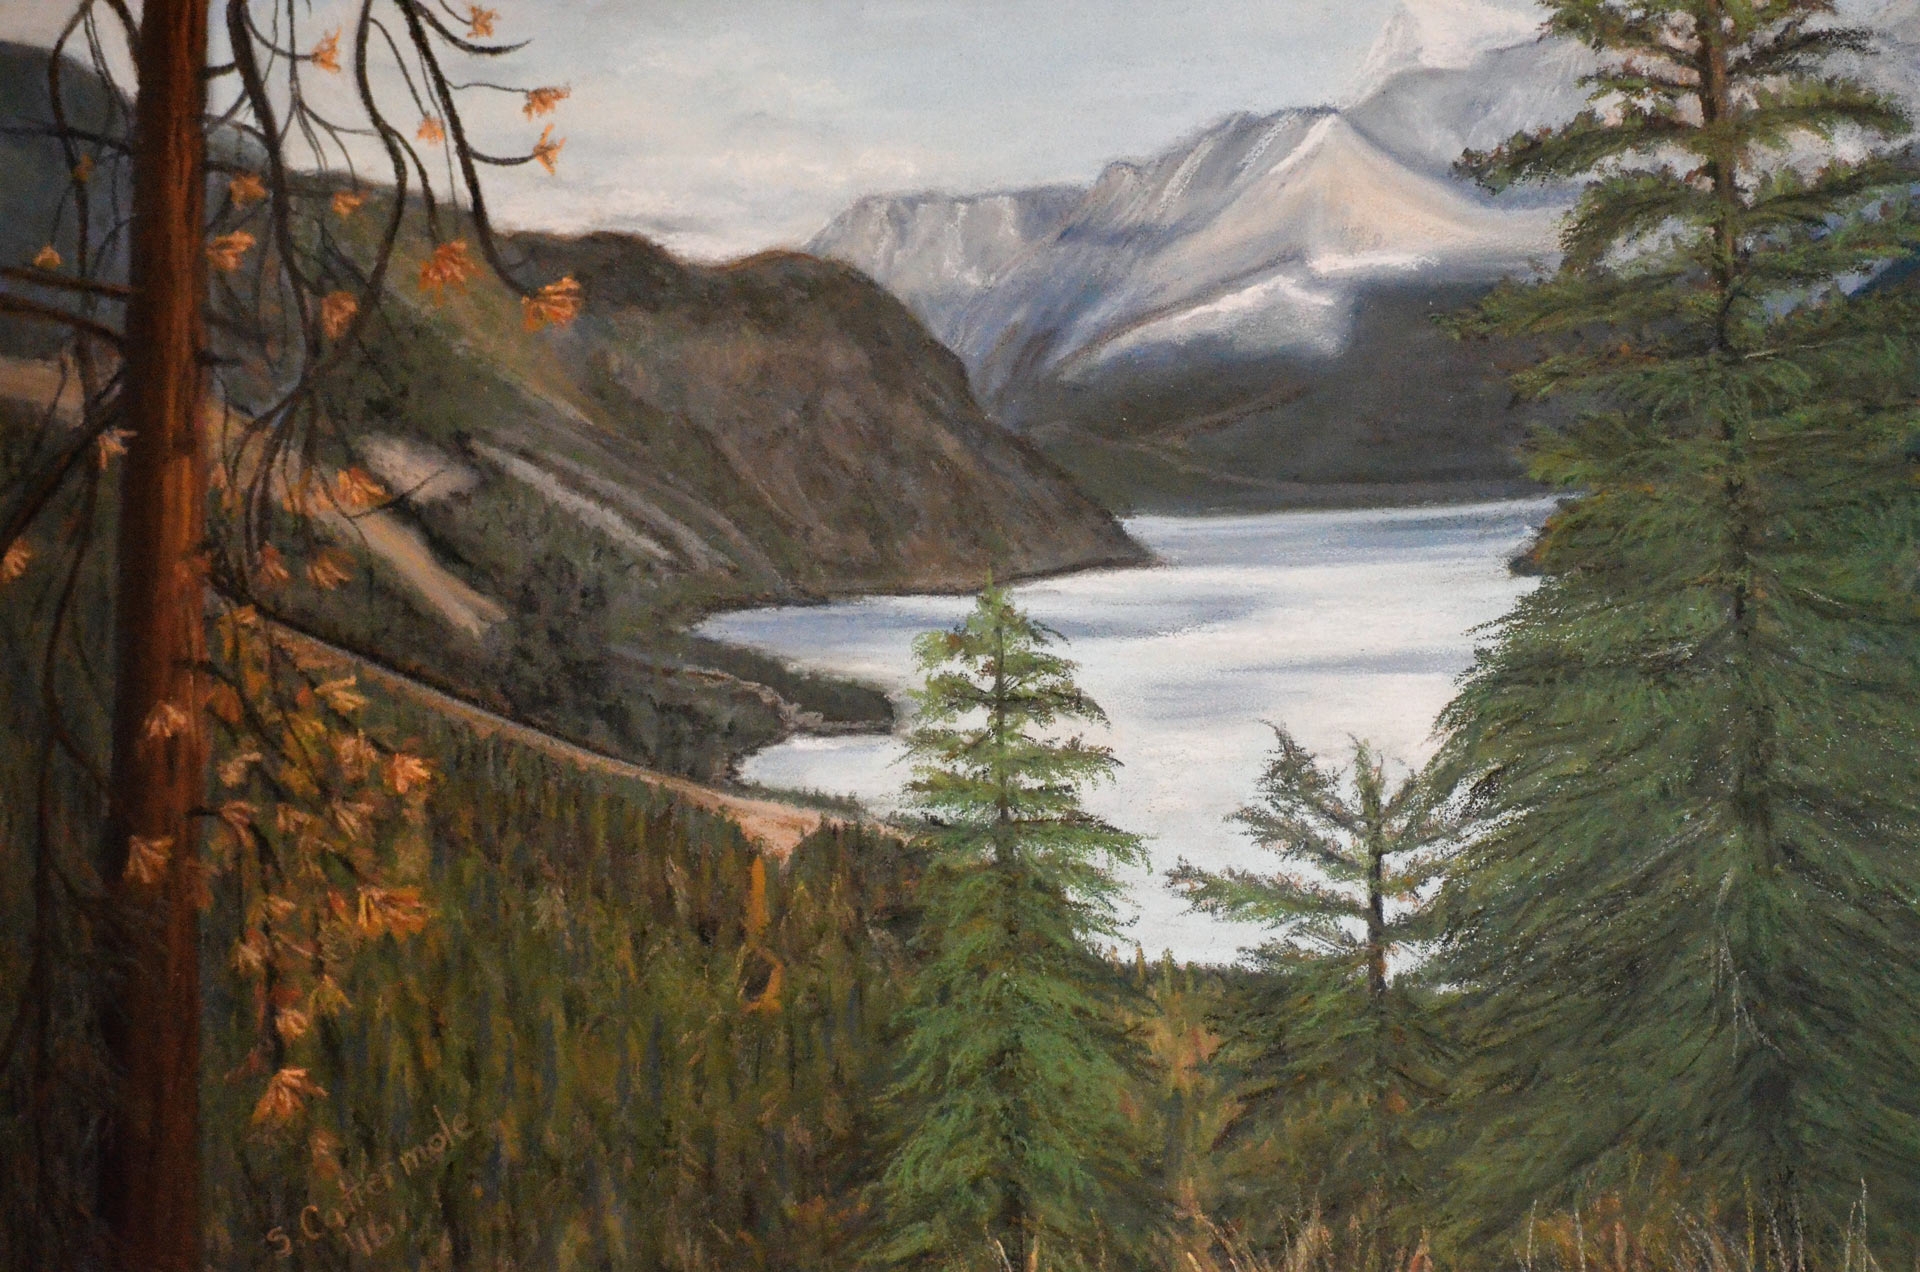 Anderson-Lake - Painting by Sandra Cattermole